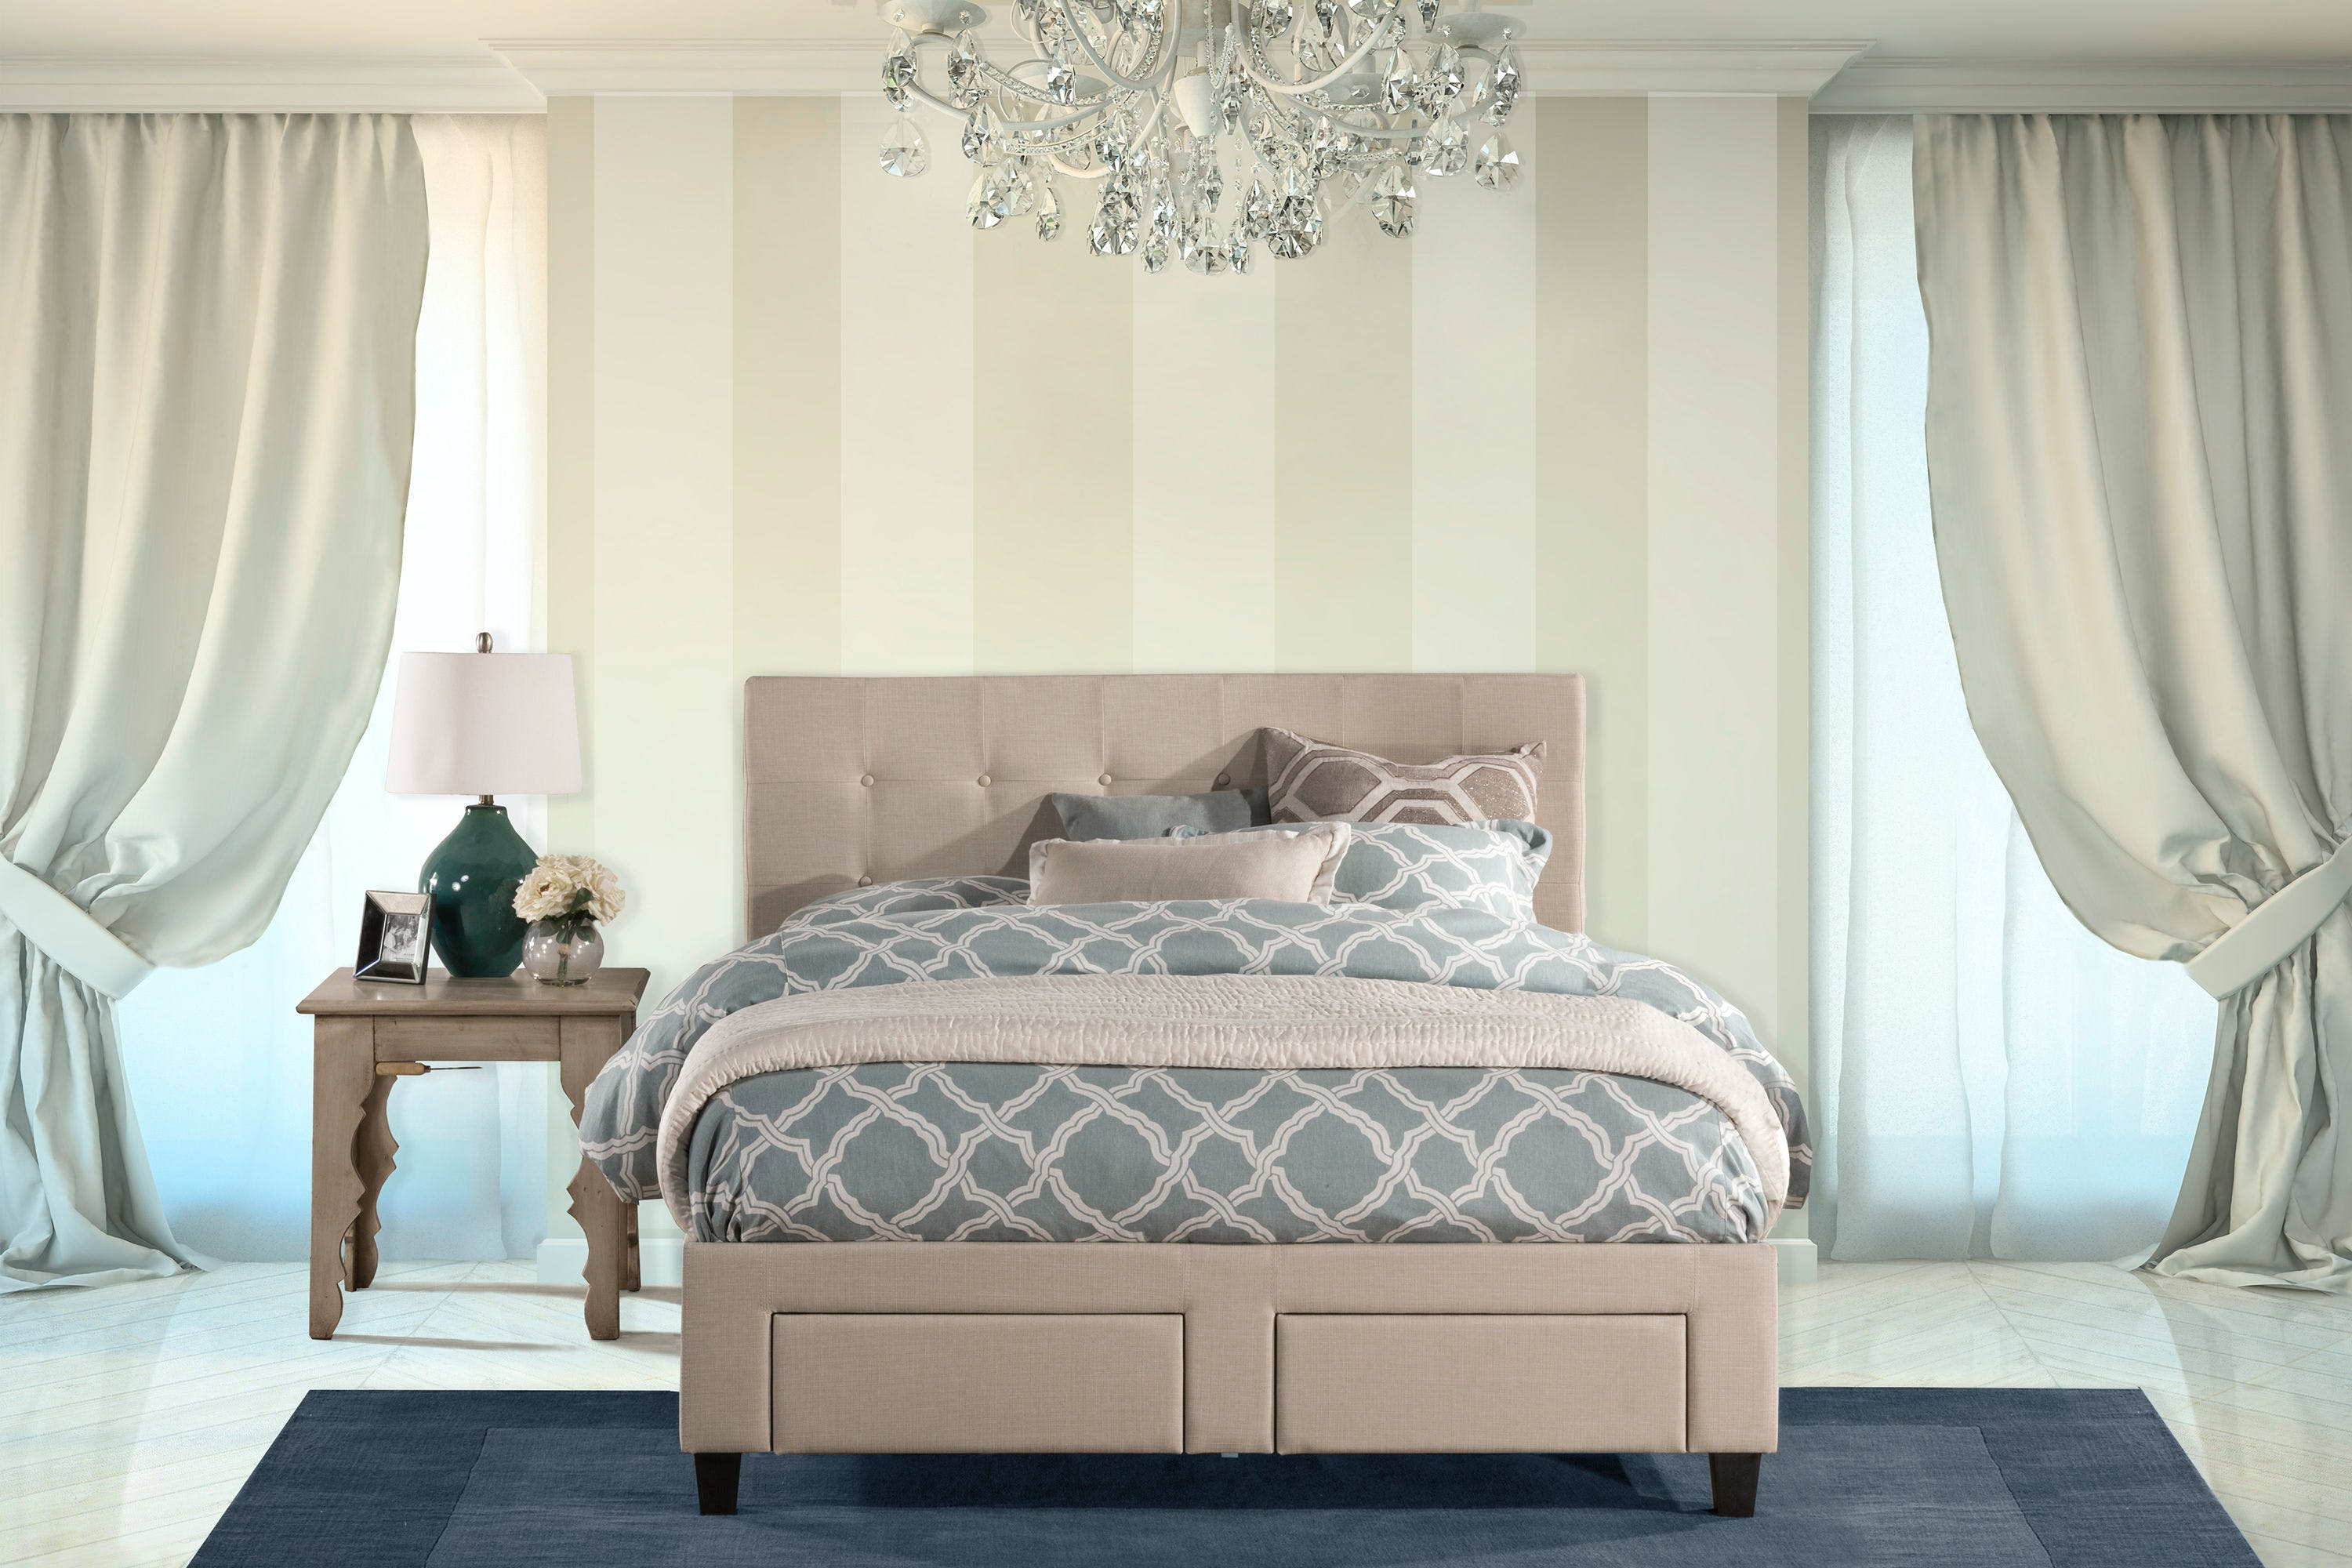 Hillsdale Furniture Bedroom Duggan Front Storage Bed Queen Rails Included 1284bqrs Robinson